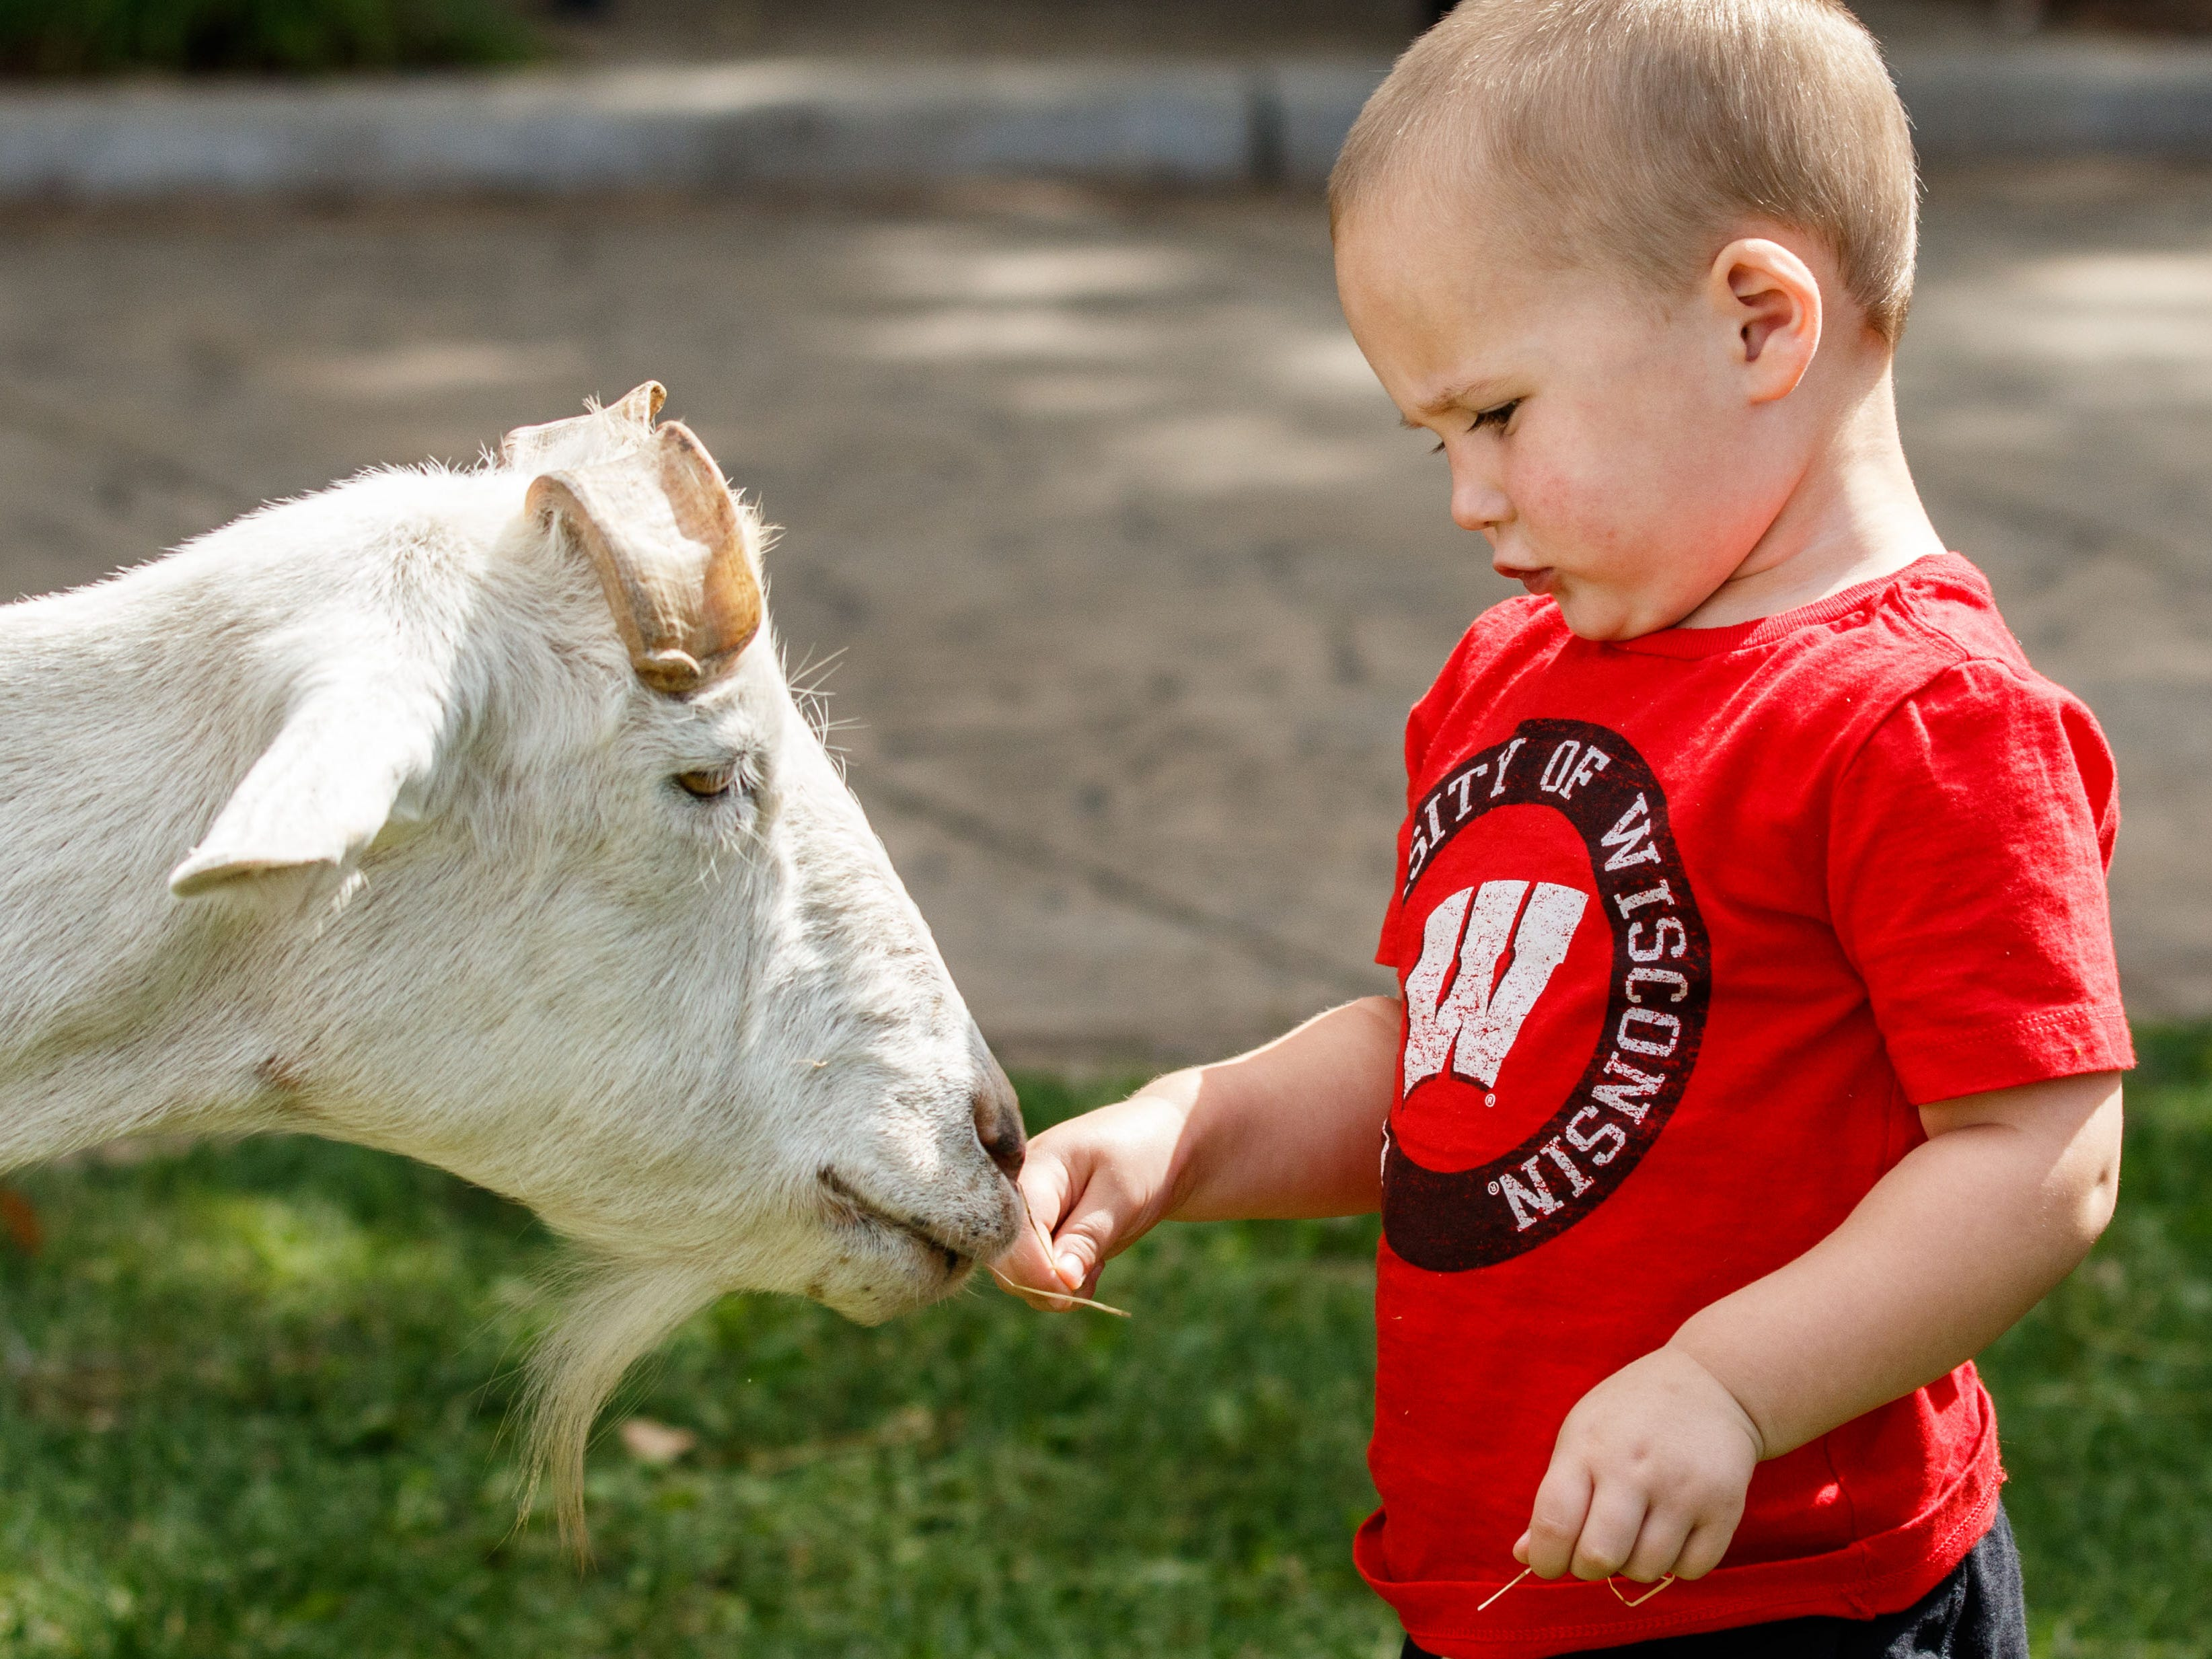 Three-year-old Carter Fox of Oconomowoc makes a new friend during the 7th annual Fall Festival hosted by the Downtown Oconomowoc Business Association on Saturday, Sept. 8, 2018. The event features live music, dancing, shopping, arts and crafts, food, refreshments and more.